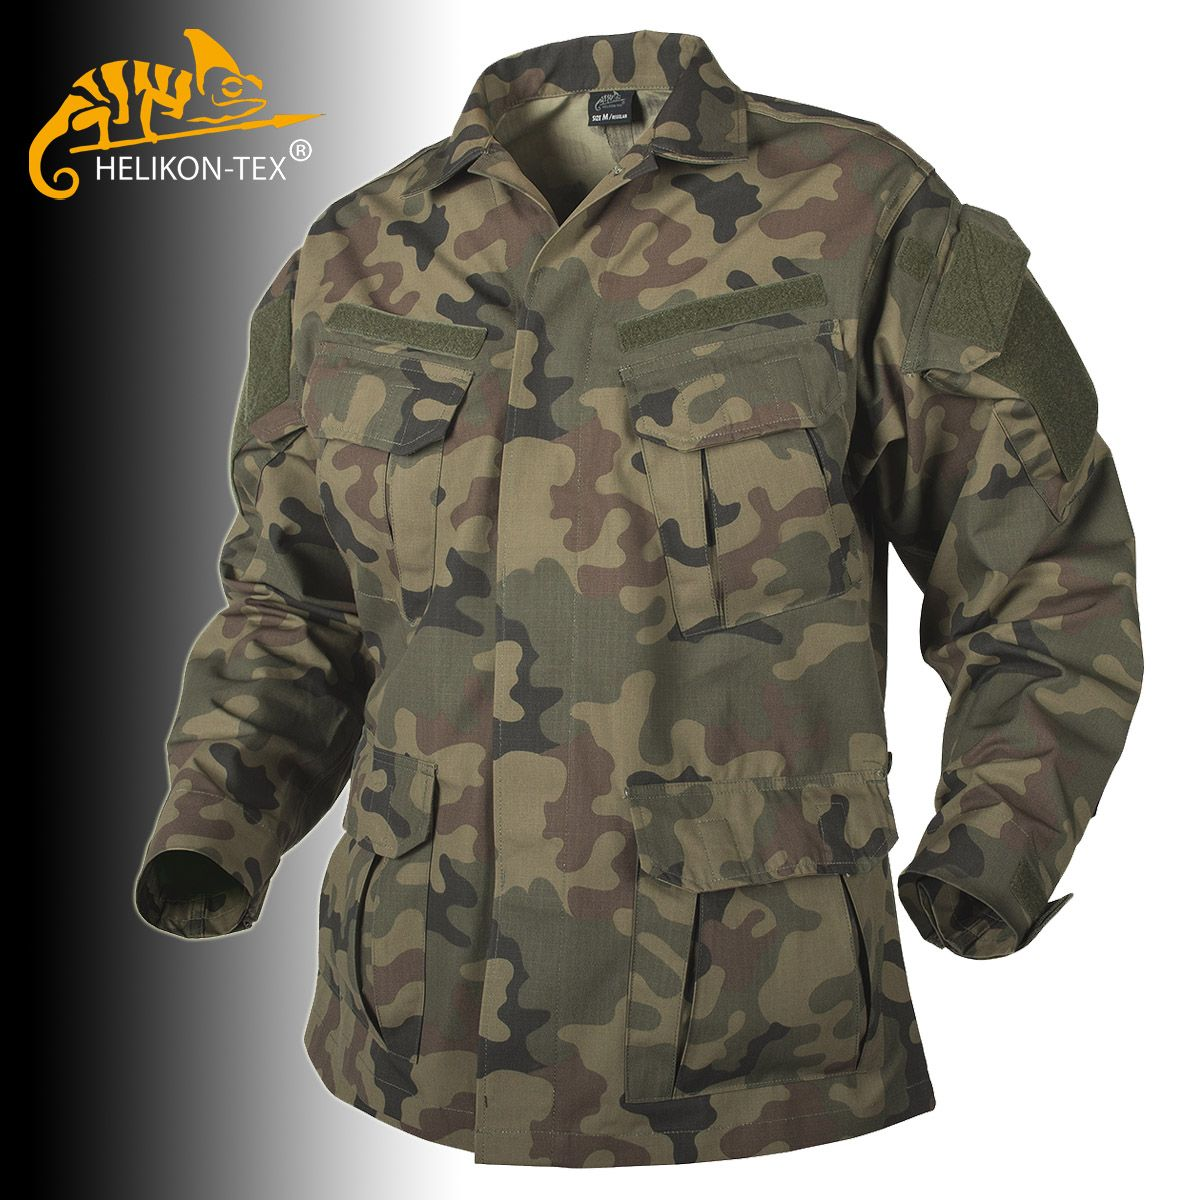 Helikon-Tex SFU NEXT Shirt in Polish Woodland camo is available now at Military 1st! Based on the classic SFU design, with a casual collar, 6 large pockets with Velcro flaps, reinforced elbows with elbow pads compartments, and Velcro panels for attachment of patches or badges. Only £28.50!